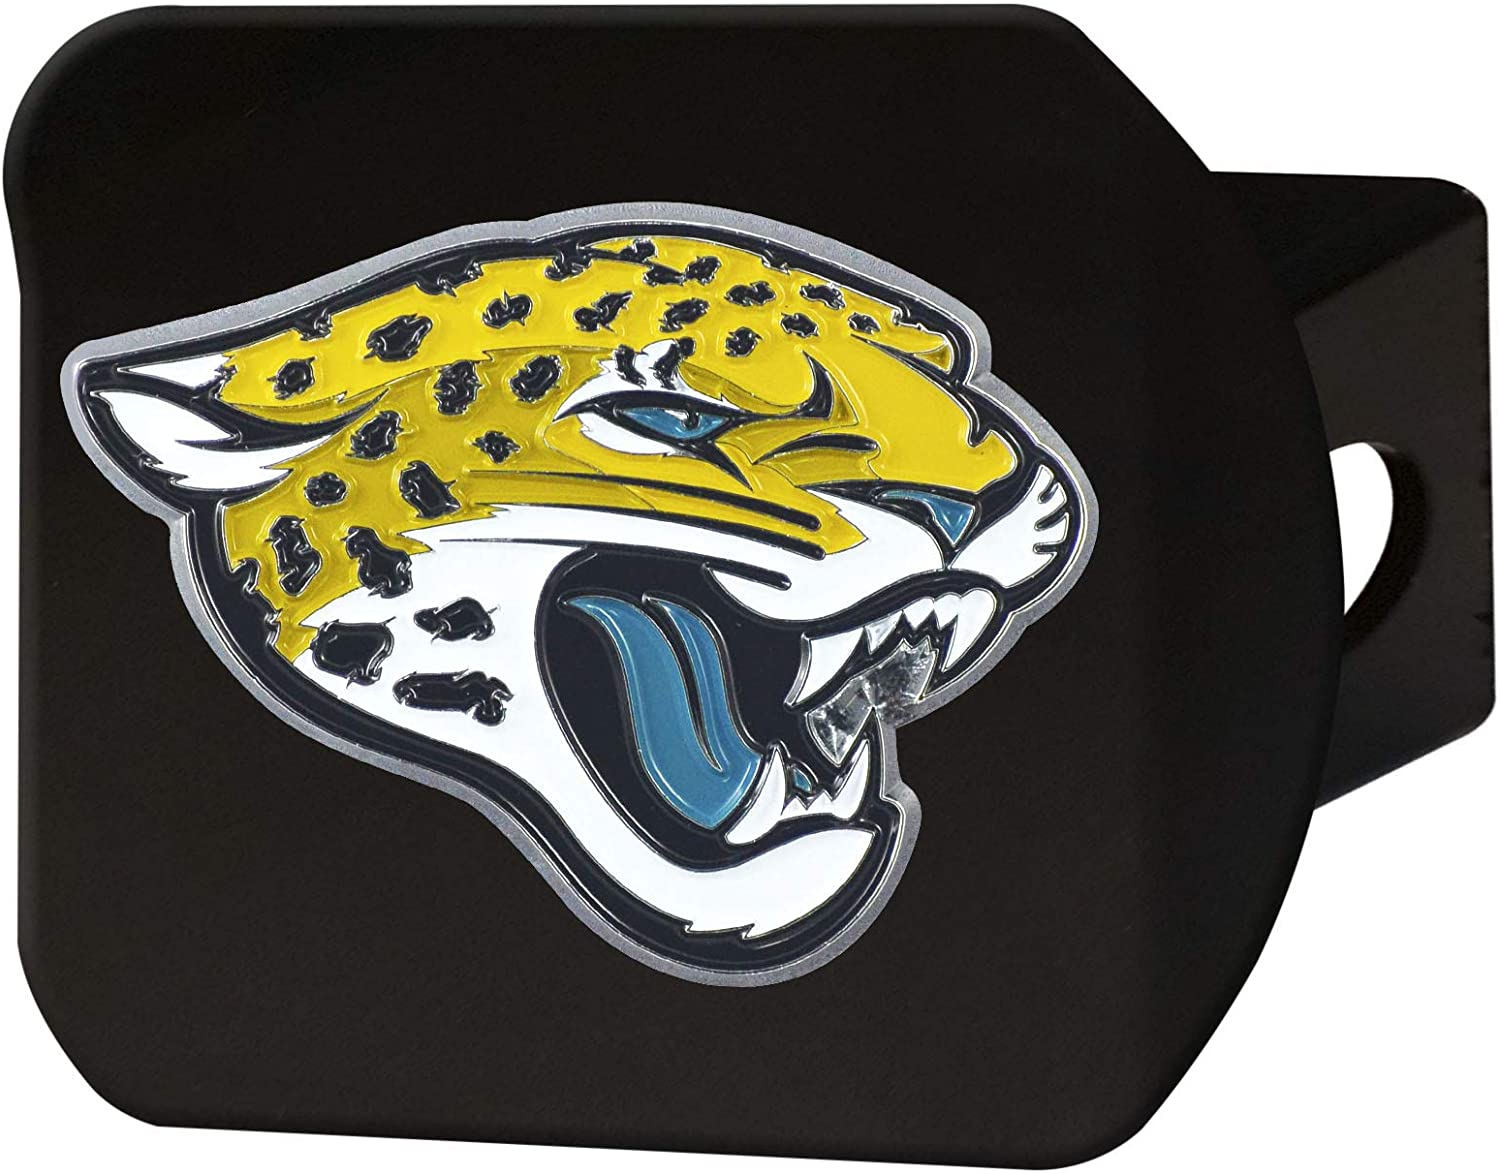 FANMATS NFL Jacksonville Jaguars Metal Hitch Cover, Black, 2 Square Type III Hitch Cover